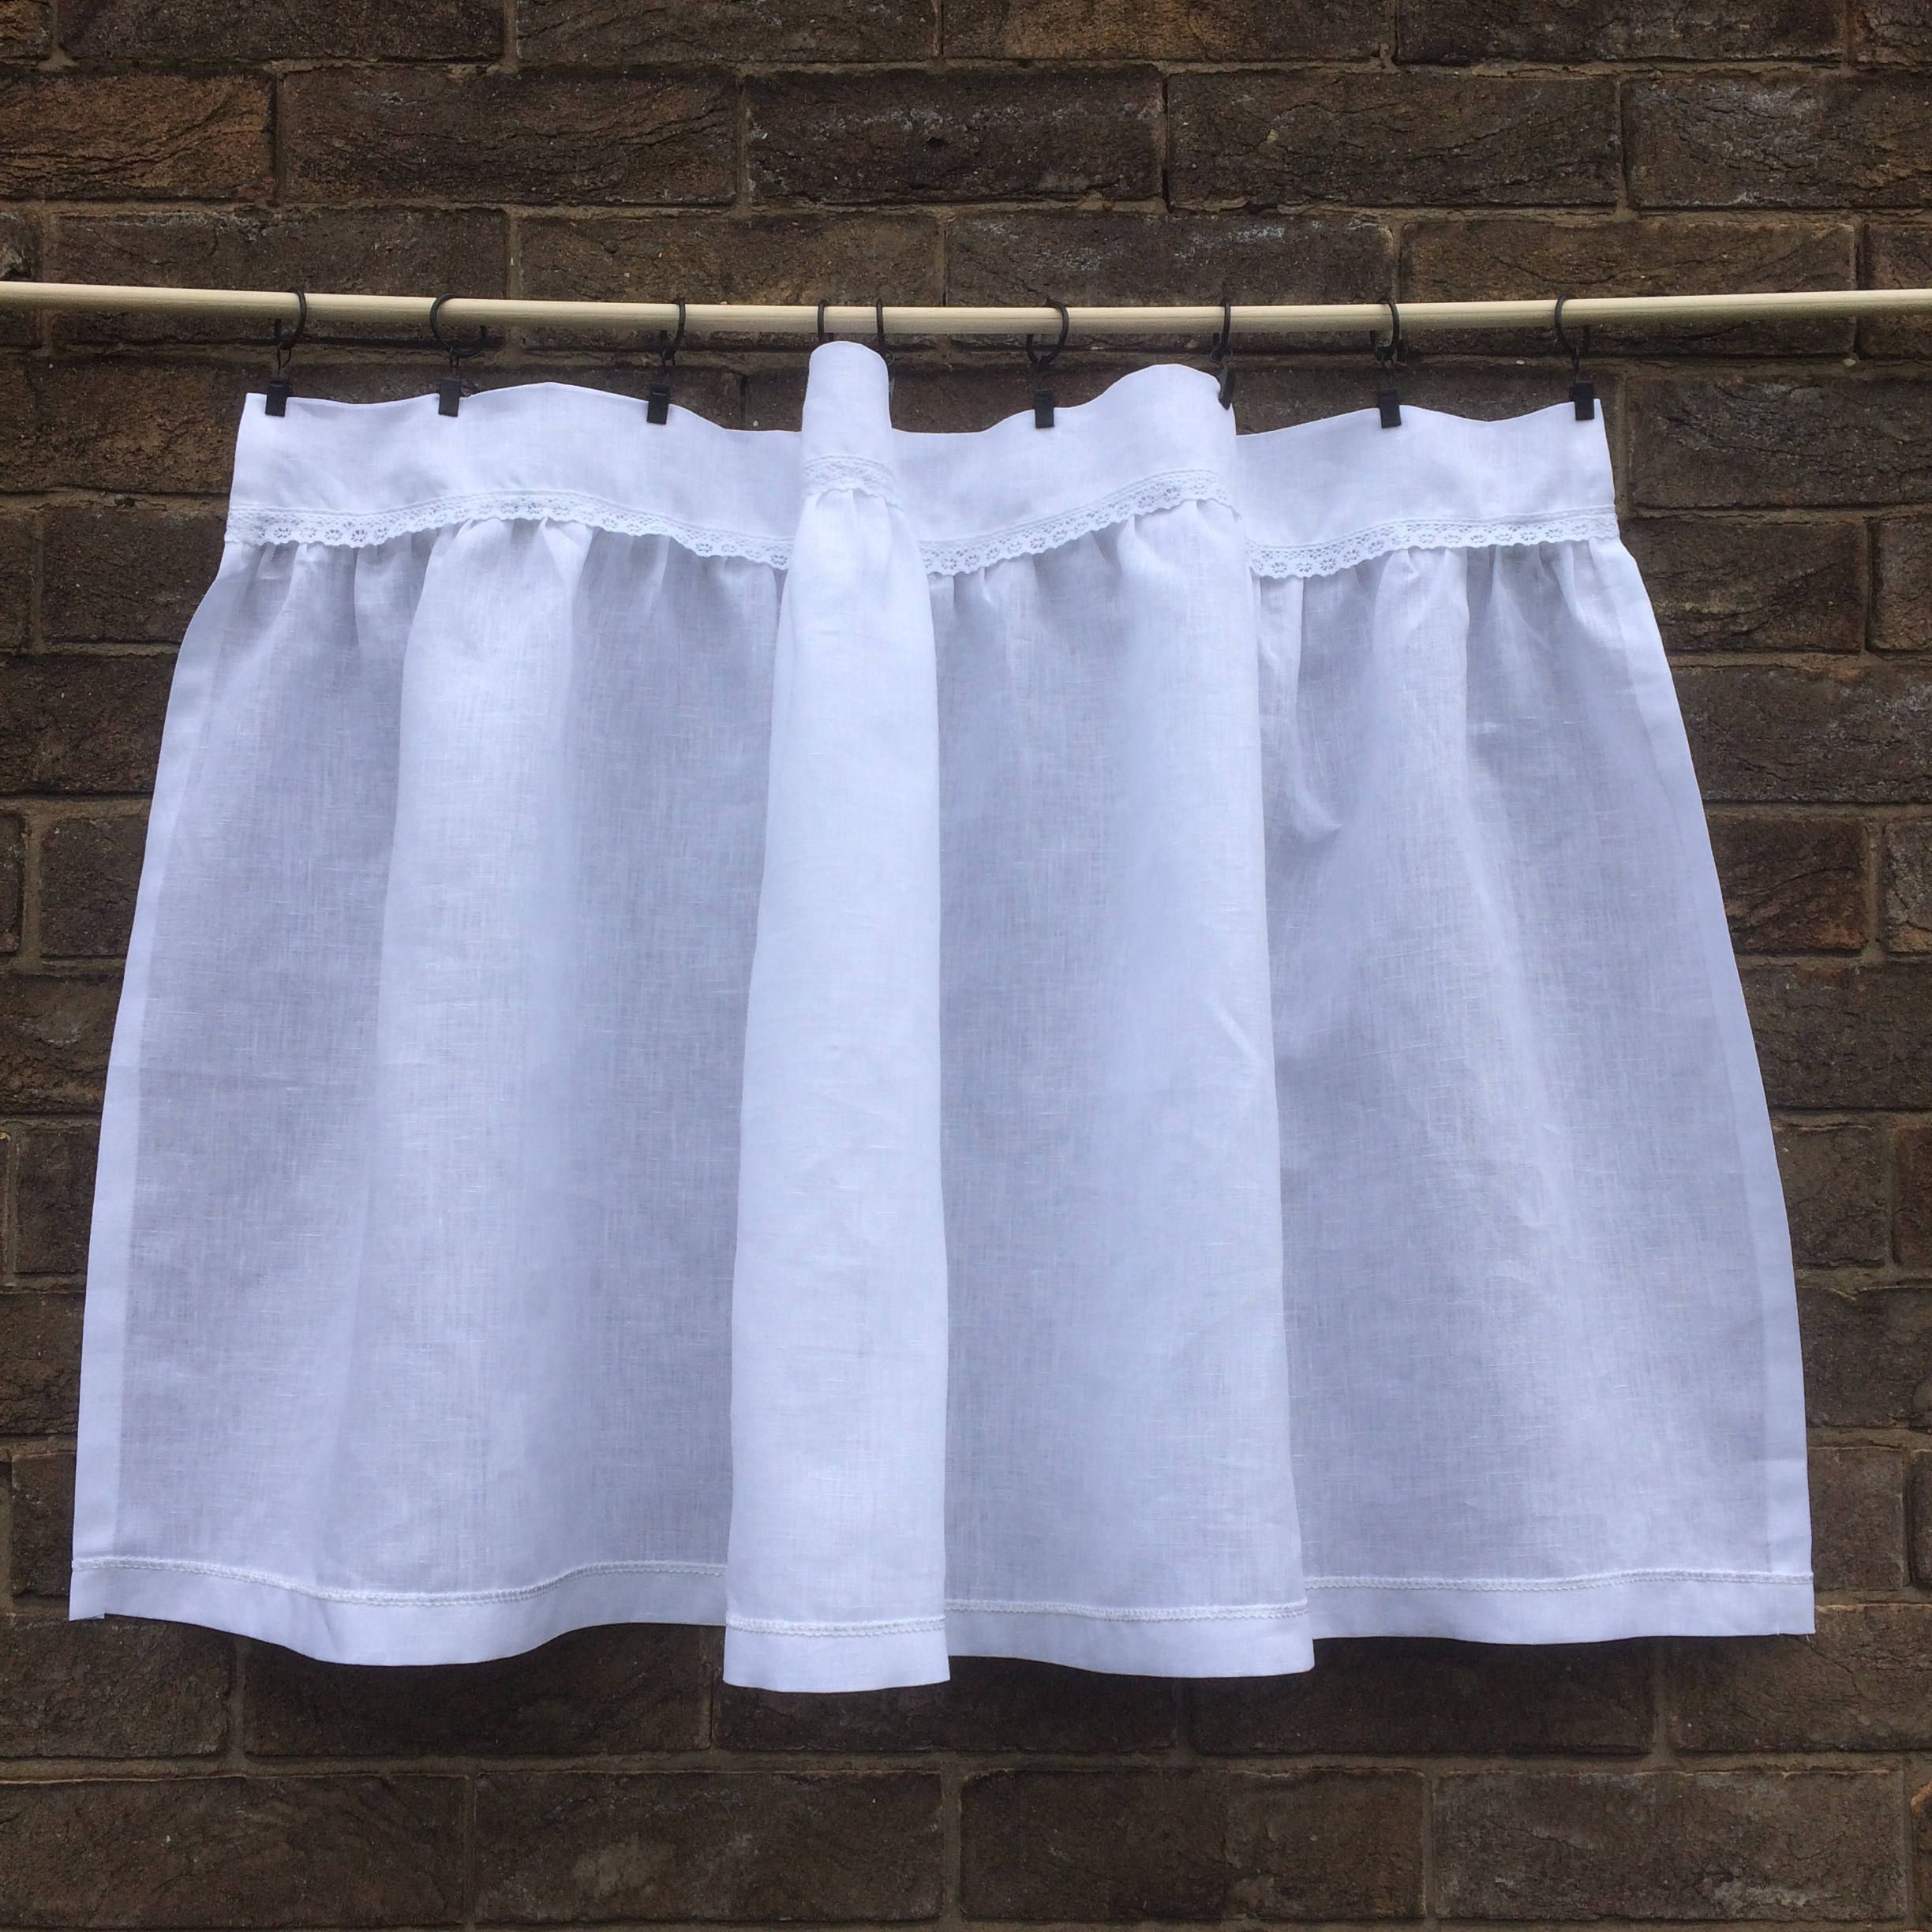 French cafe curtains for kitchen - White Linen Lace Cafe Curtain Shabby Chic Window Curtain Gathered French Kitchen Curtain